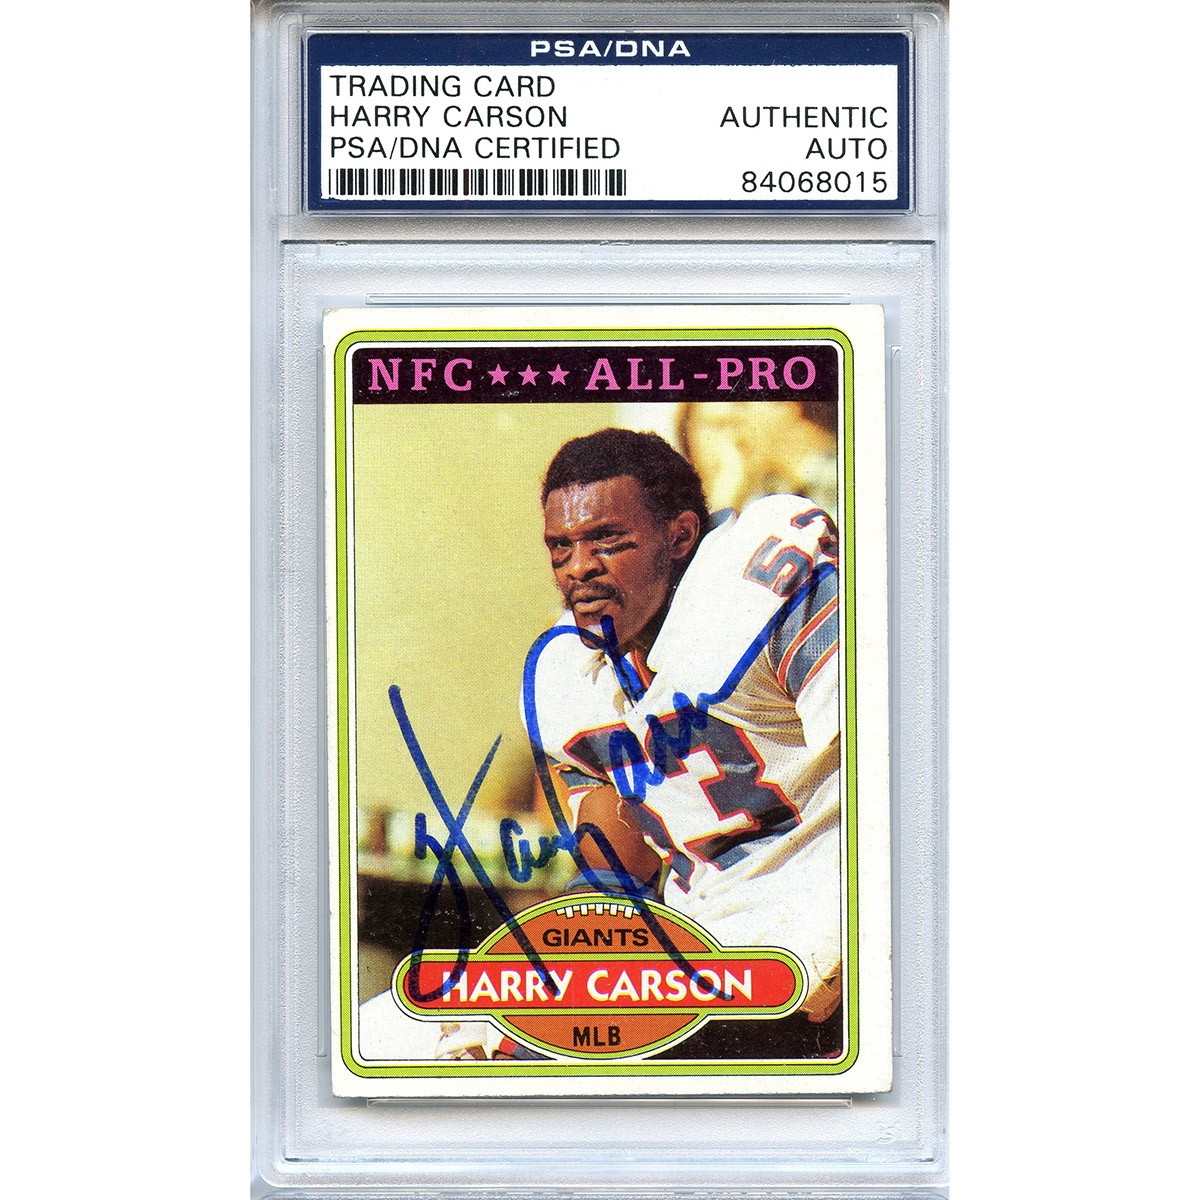 eb19ee8c4 Harry Carson Autographed Signed 1980 Topps All Pro Trading Card - PSA DNA  Authentic